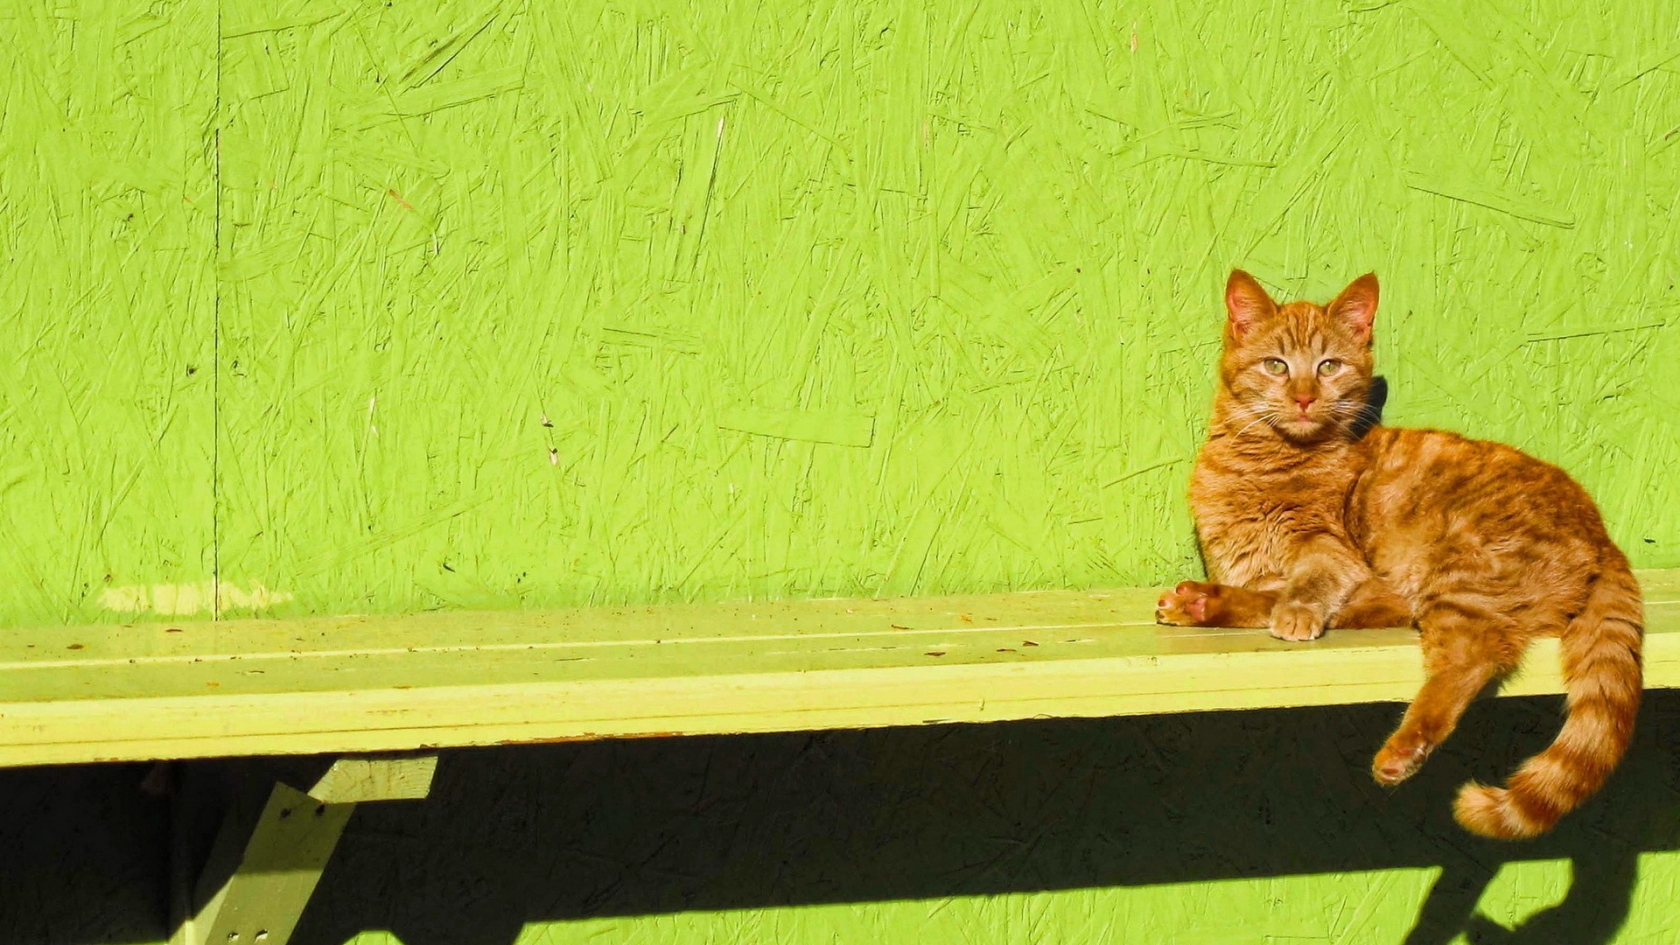 Ginger Cat Sitting on a Bench for 1680 x 945 HDTV resolution